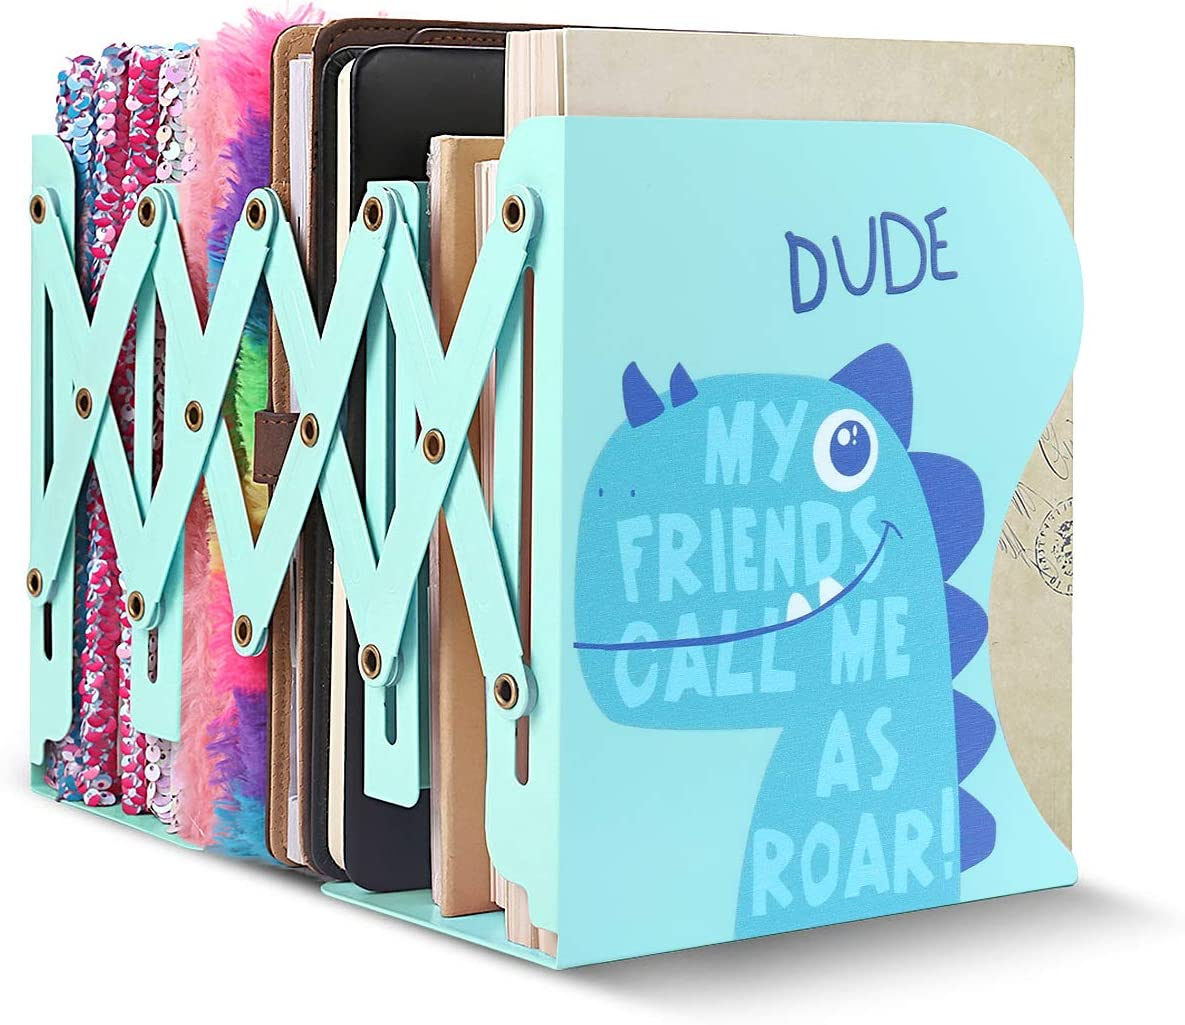 SubClap Adjustable Bookends Metal Book Racks for Kids, Expandable Cartoon Student Book Ends for Heavy Book, Book Holder Hold Books, Magazines, Cookbooks, Desktop Organizer Bookshelf for Room & Office